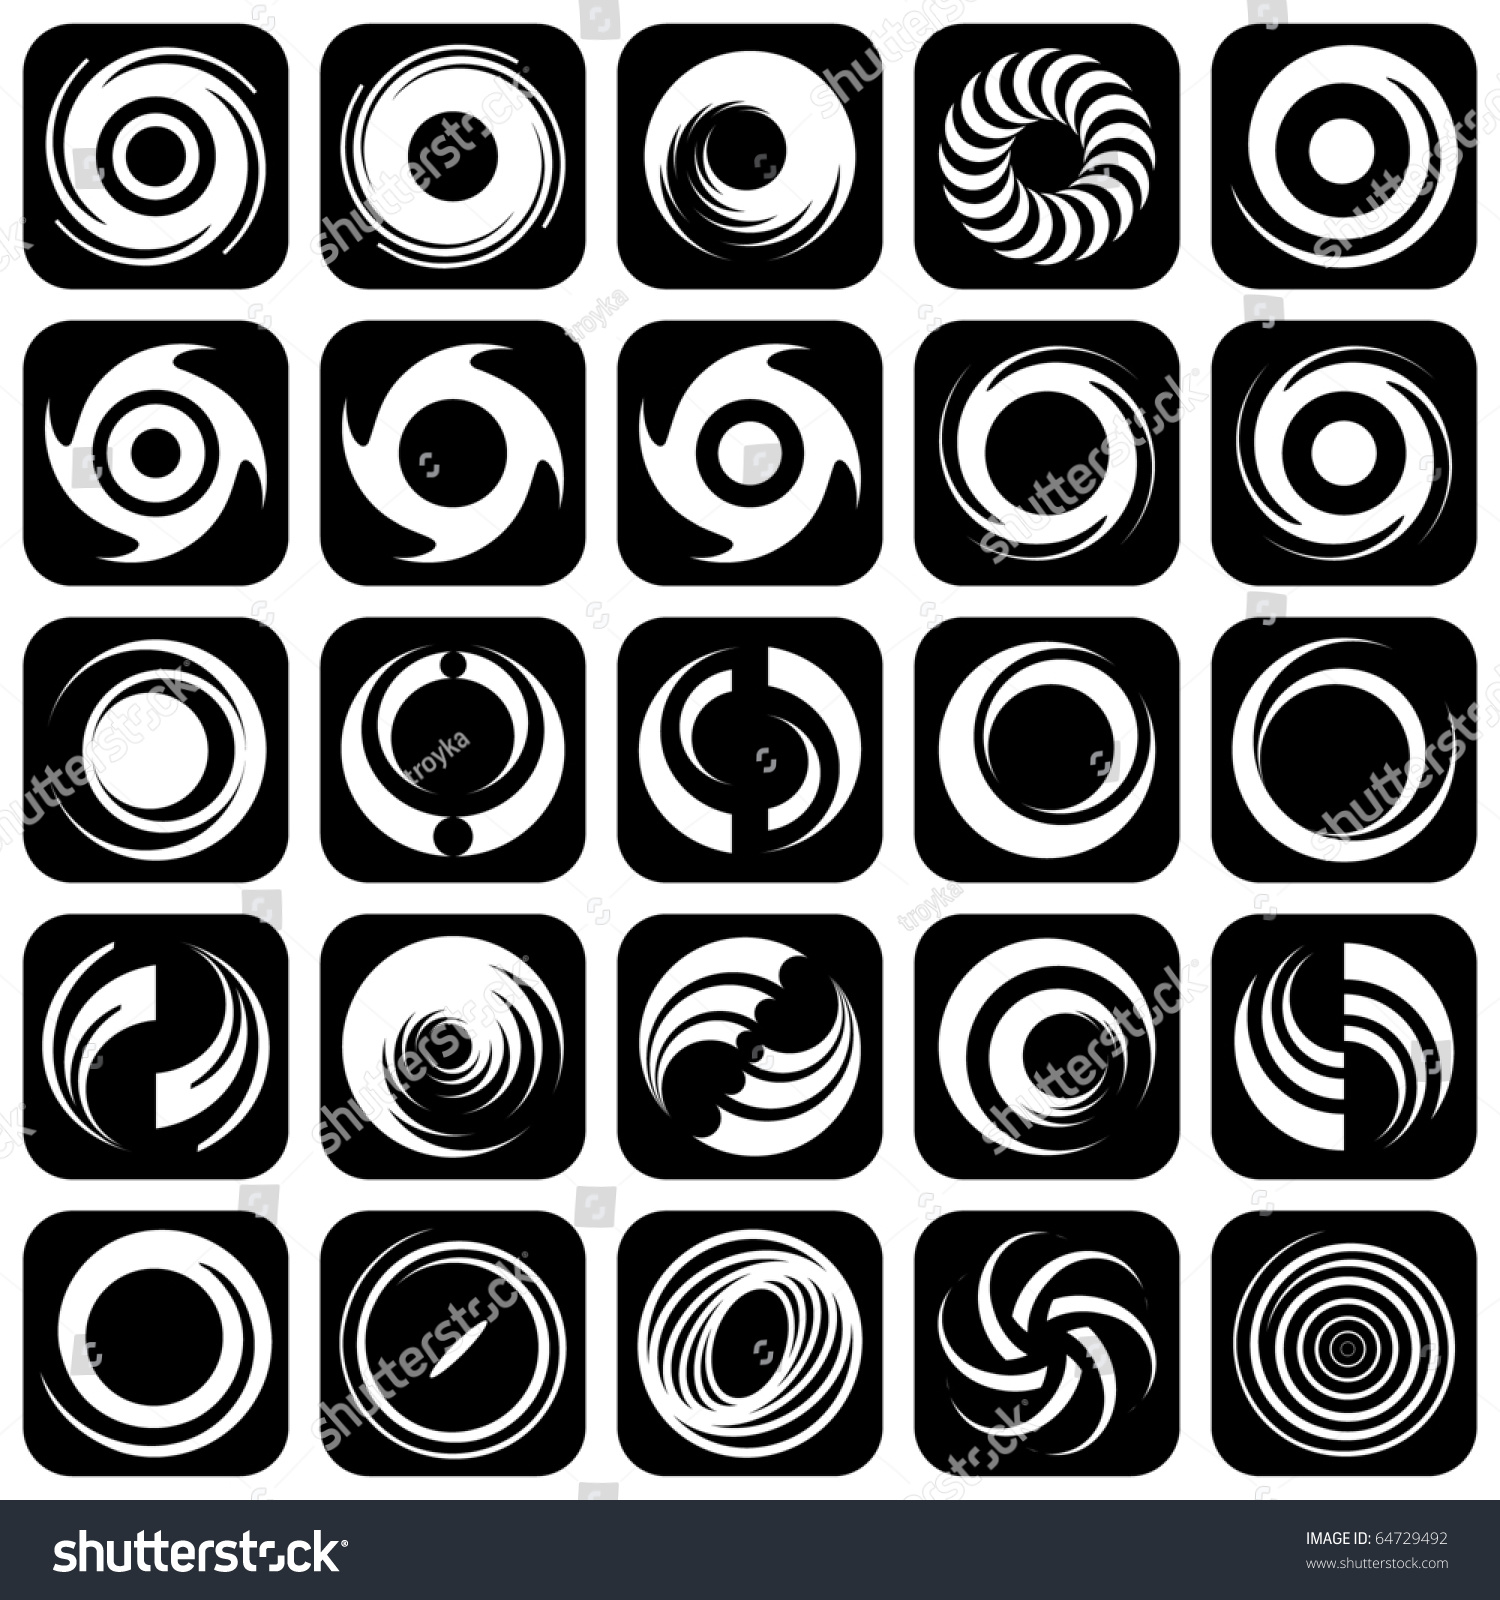 Movement Element Of Art : Spiral movement and rotation design elements set vector